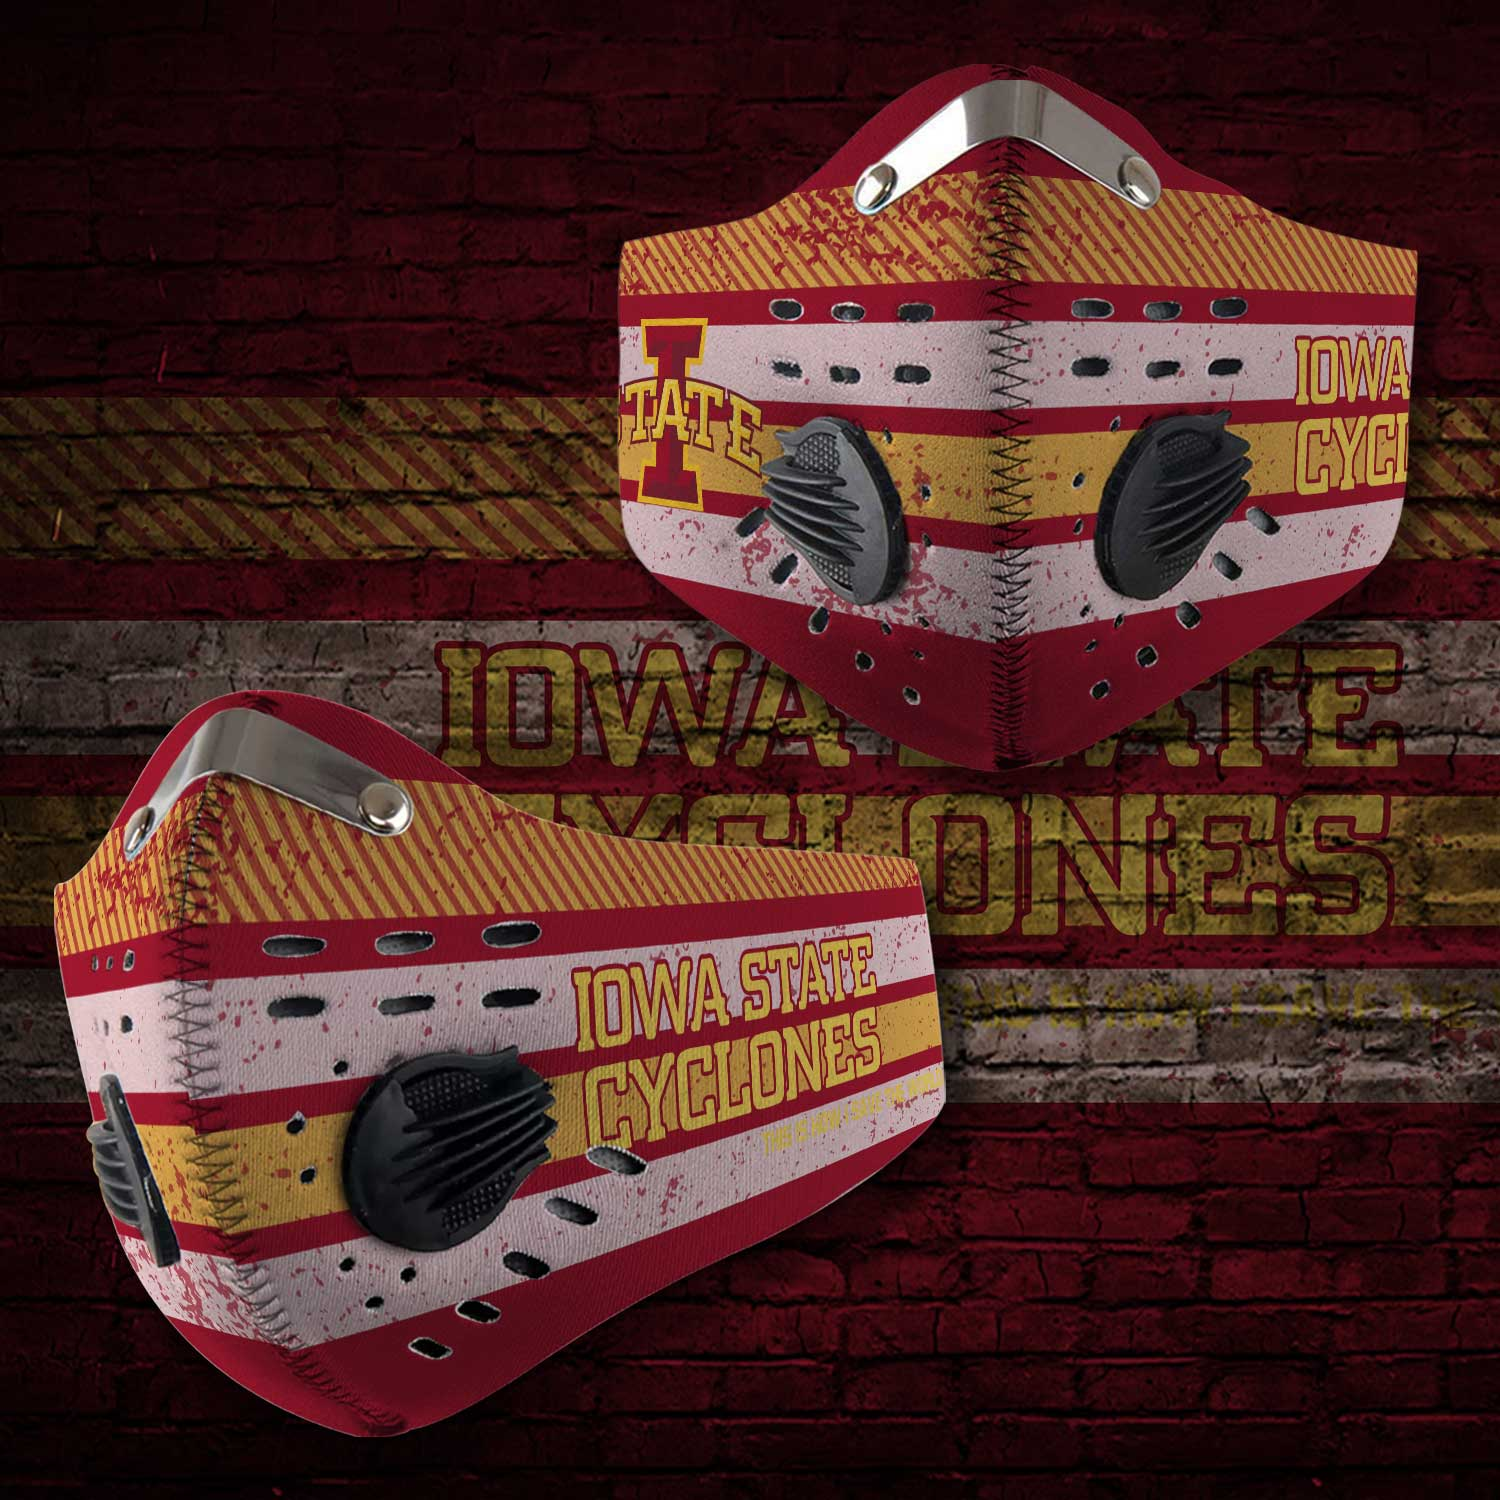 Iowa state cyclones football this is how i save the world face mask 2